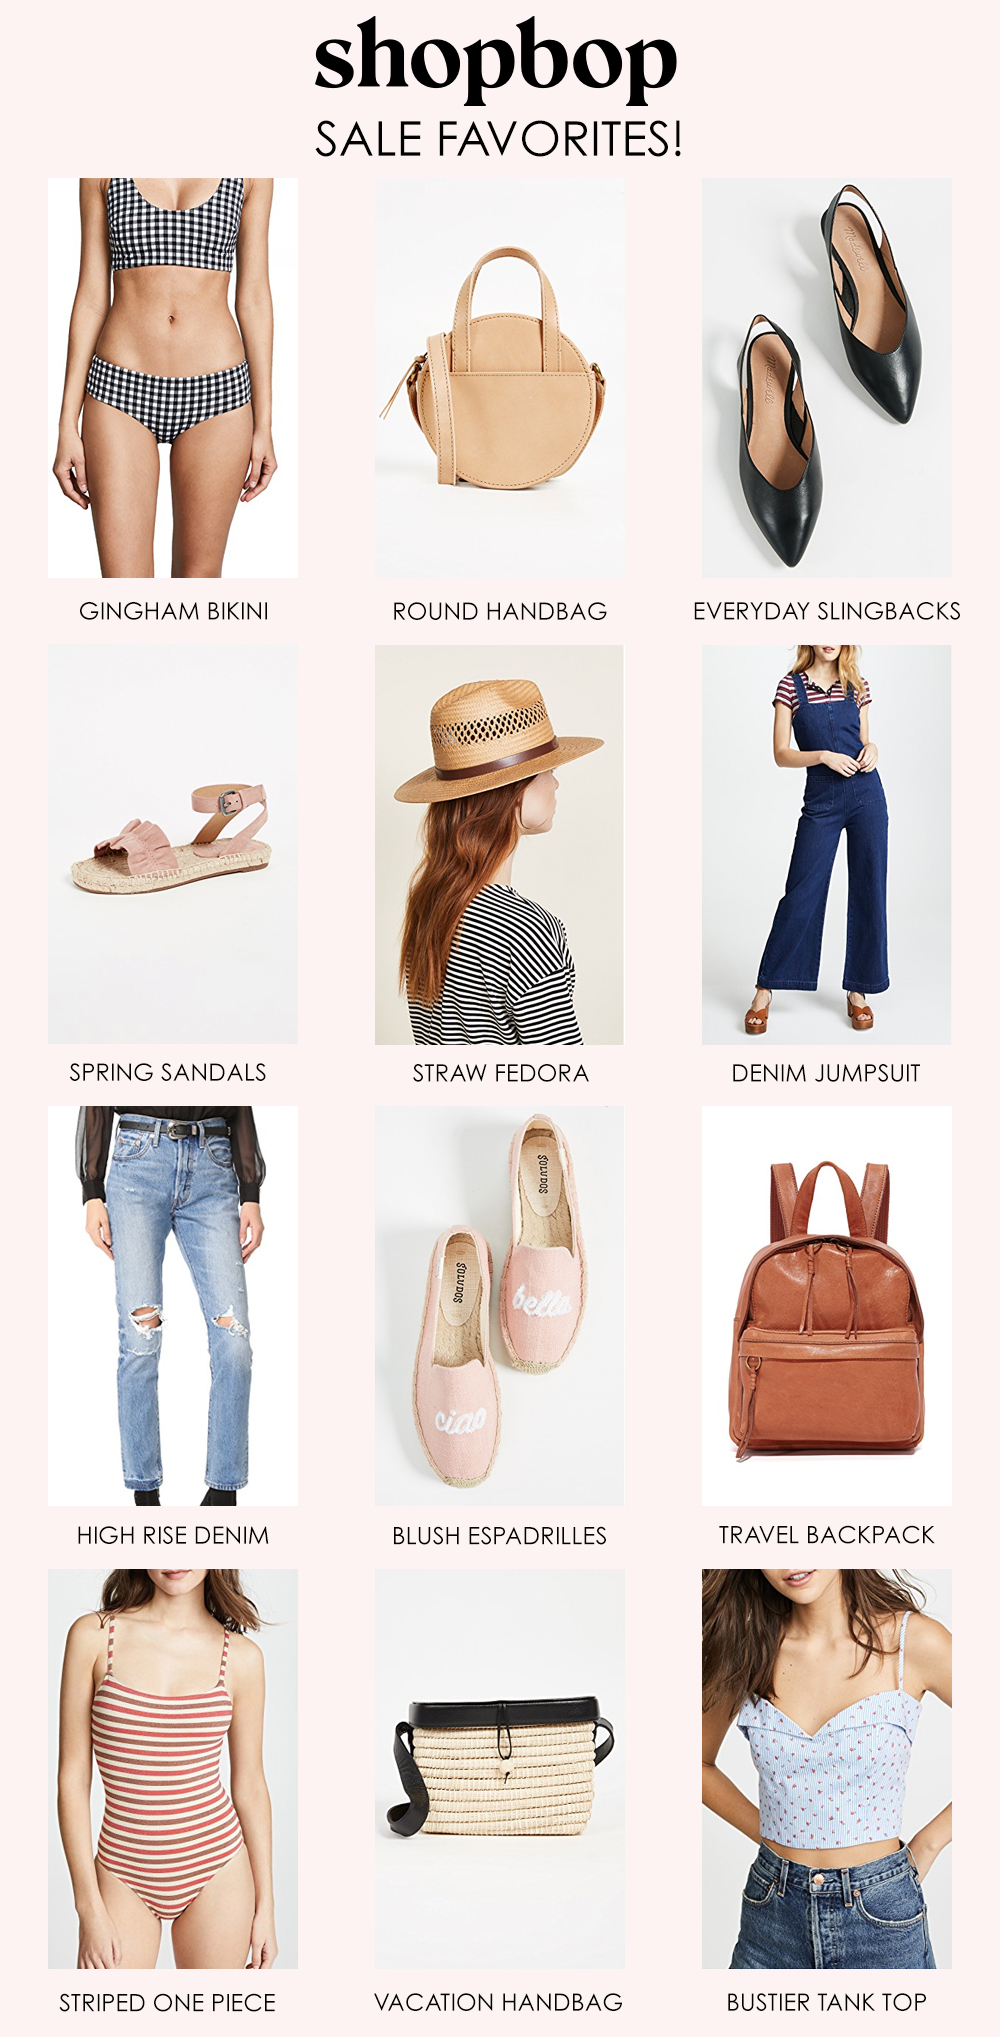 livvyland-blog-olivia-watson-shopbop-buy-more-save-more-sale-favorite-what-to-buy-shop